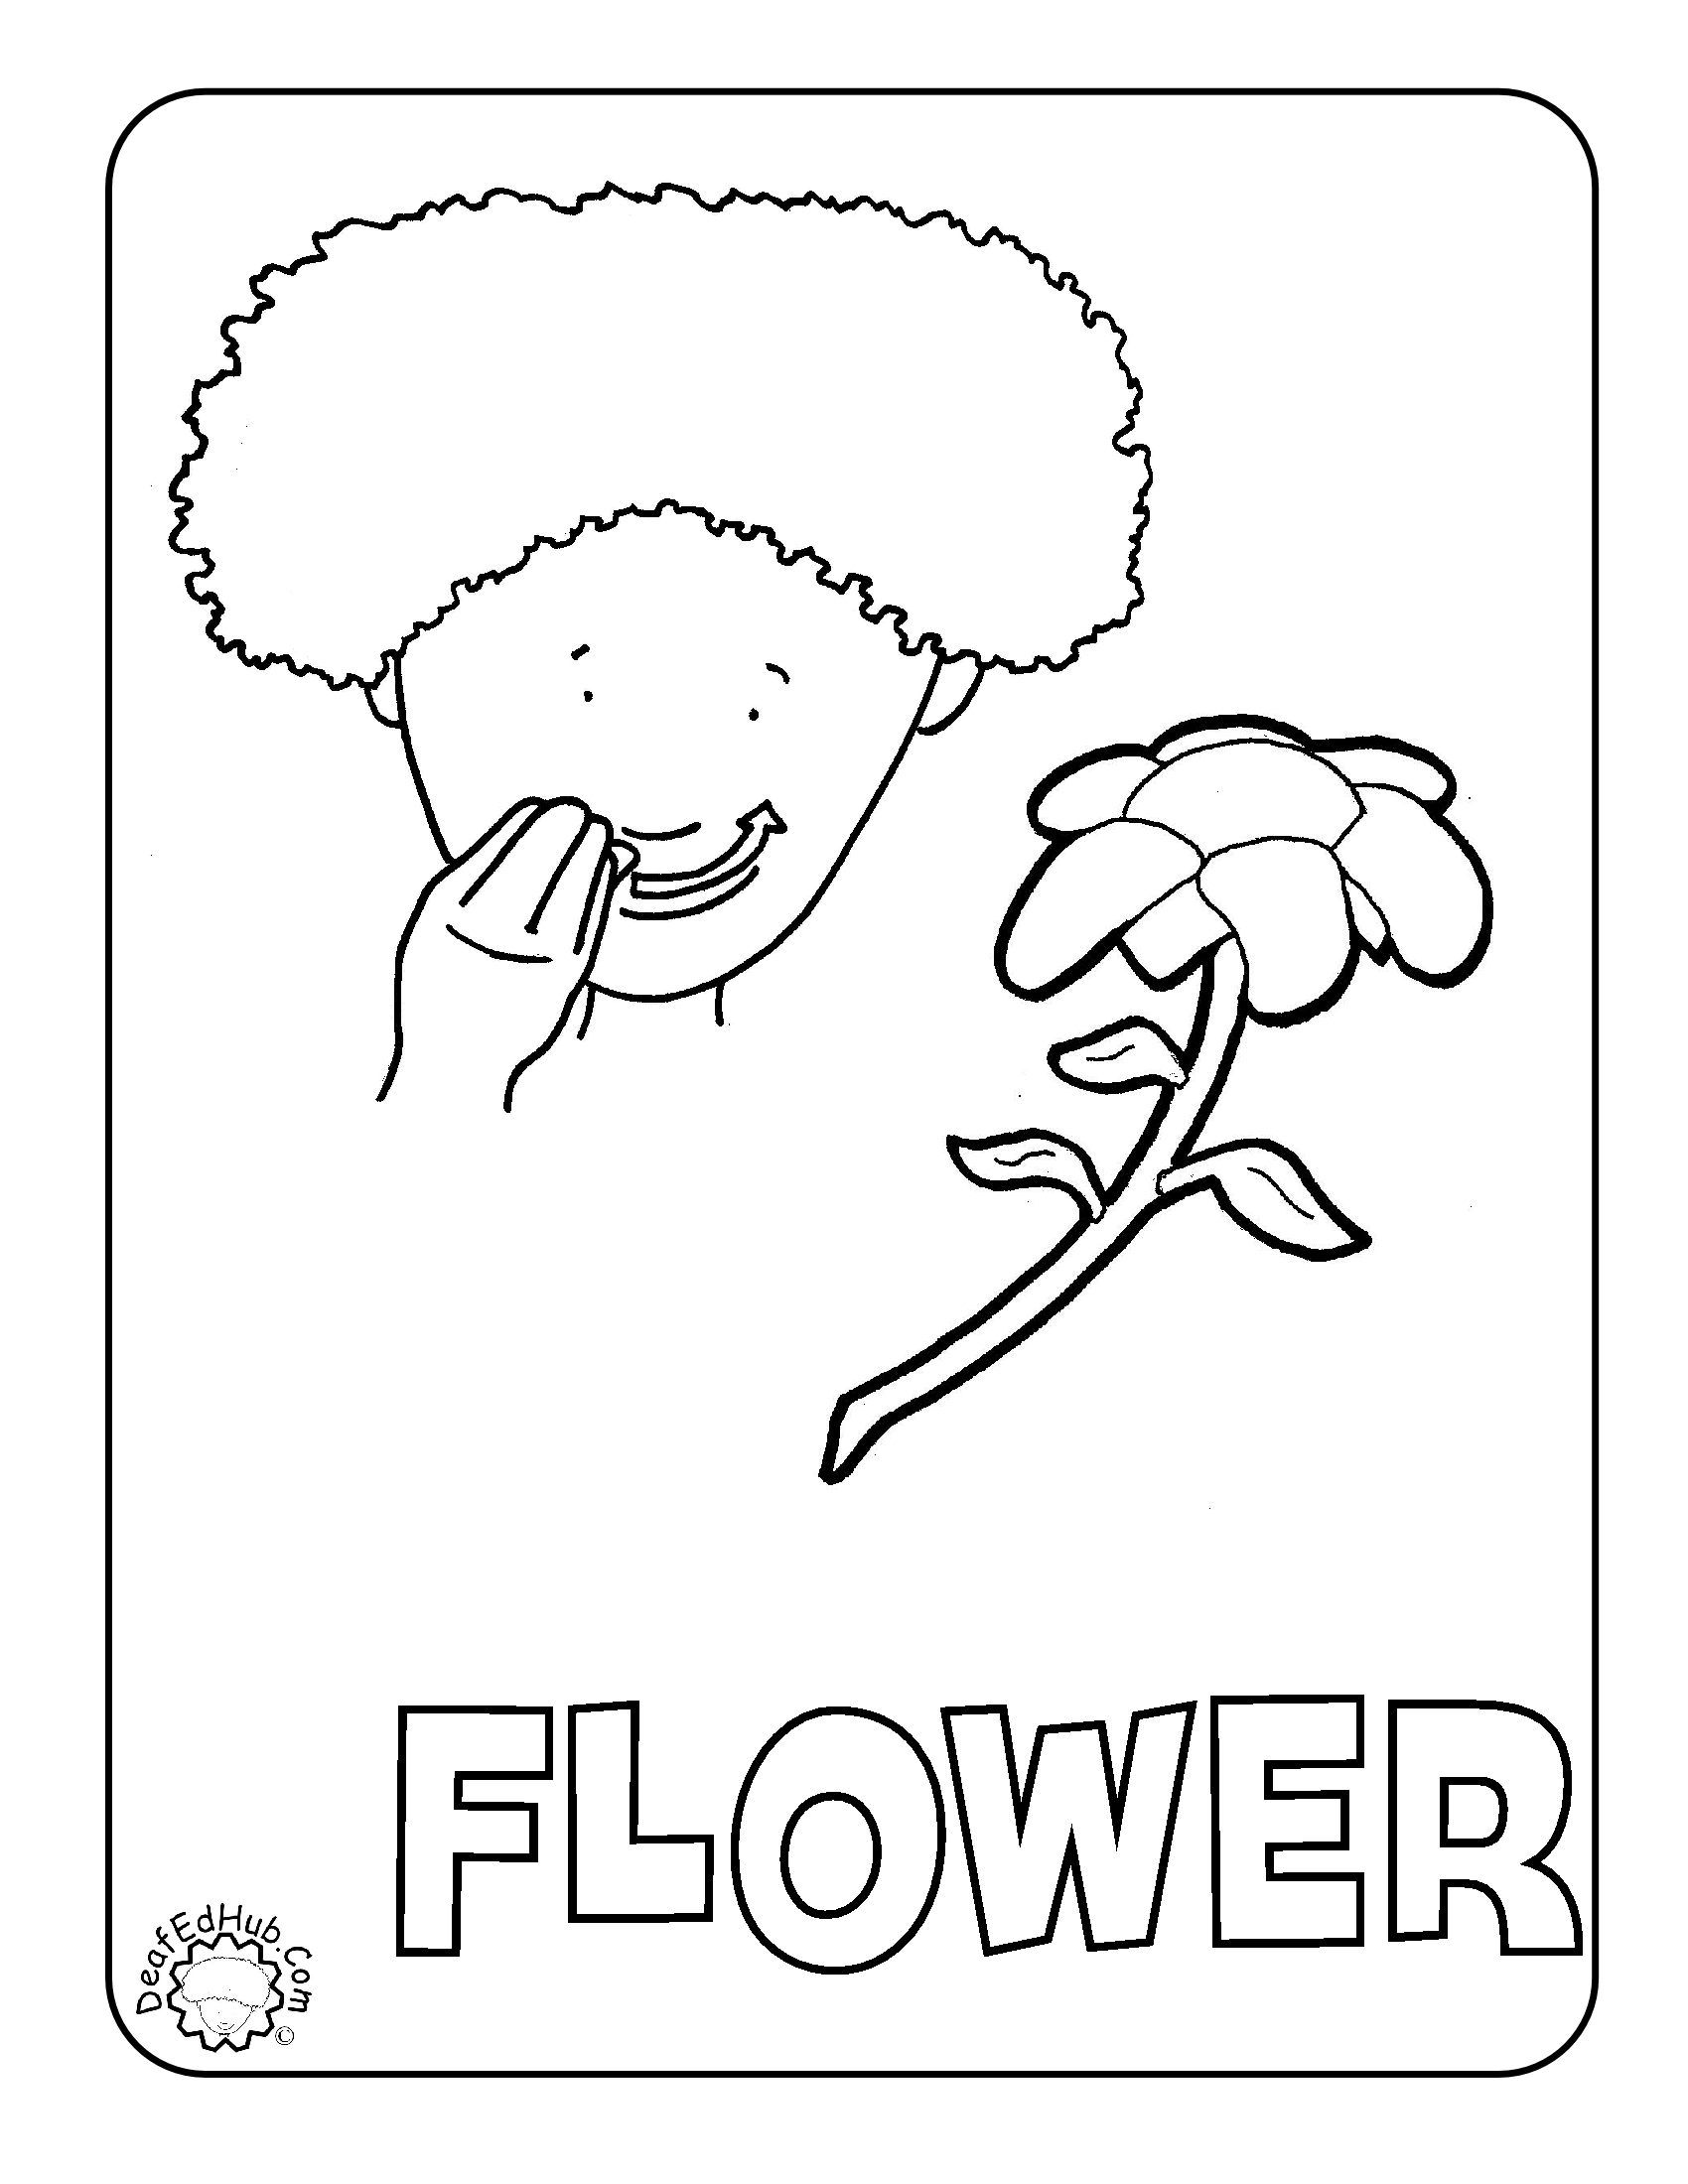 Flower Coloring Asl We Have A Few New Coloring Pages Up Now Last Count I Have 45 Coloring Pages